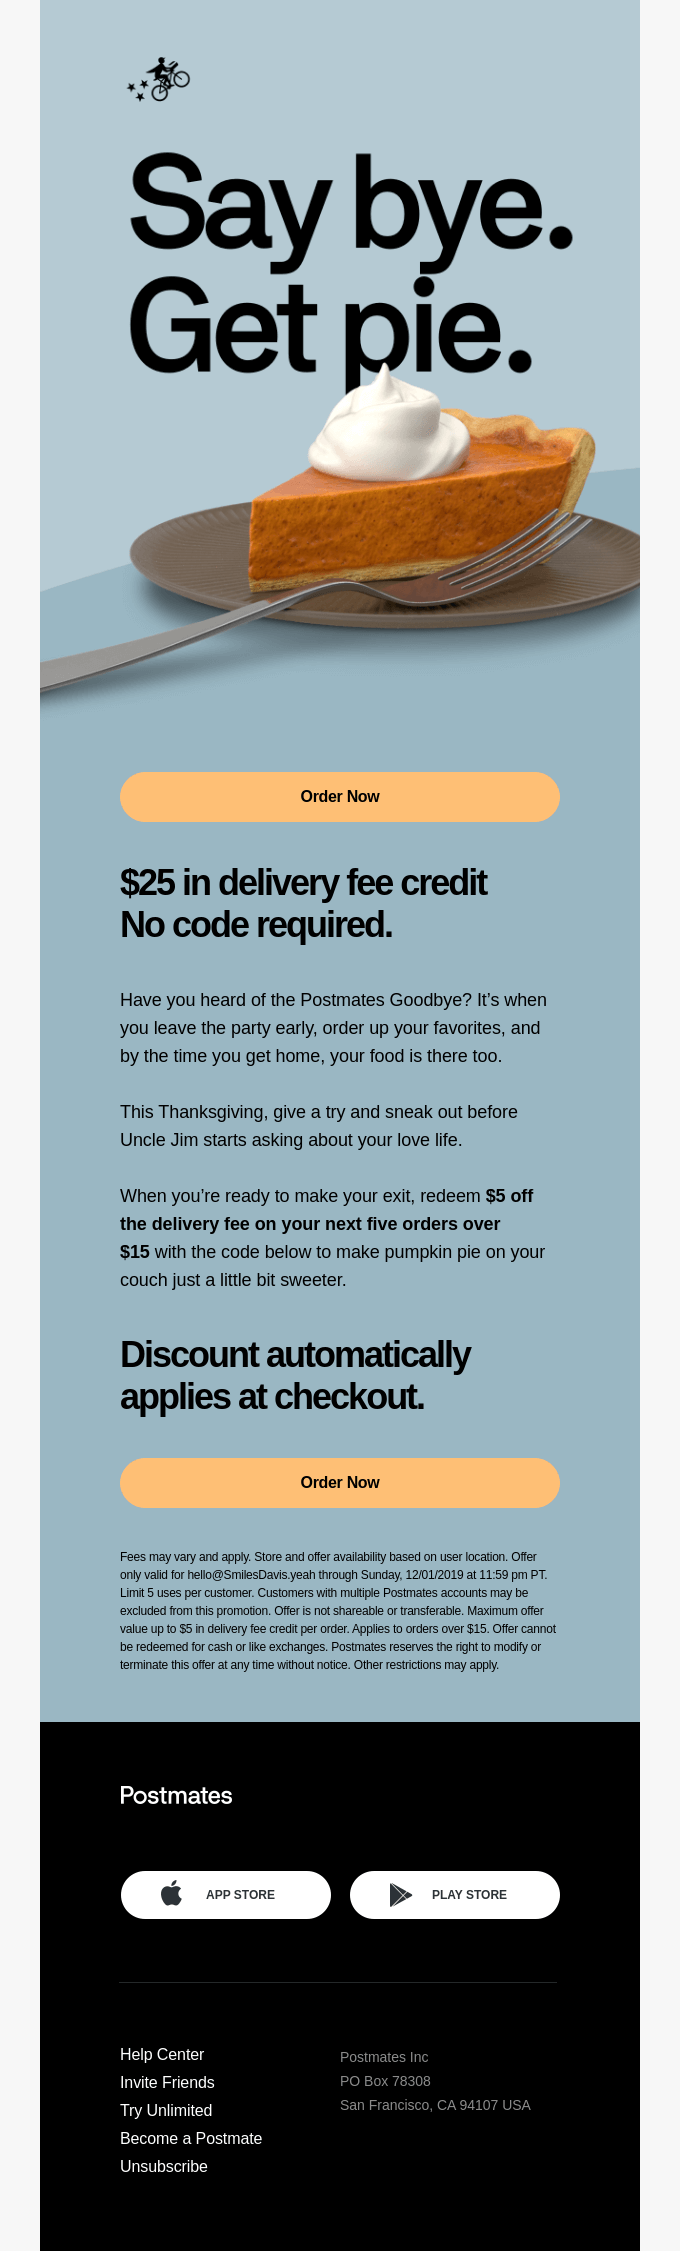 Reminder: $25 Delivery Fee Credit